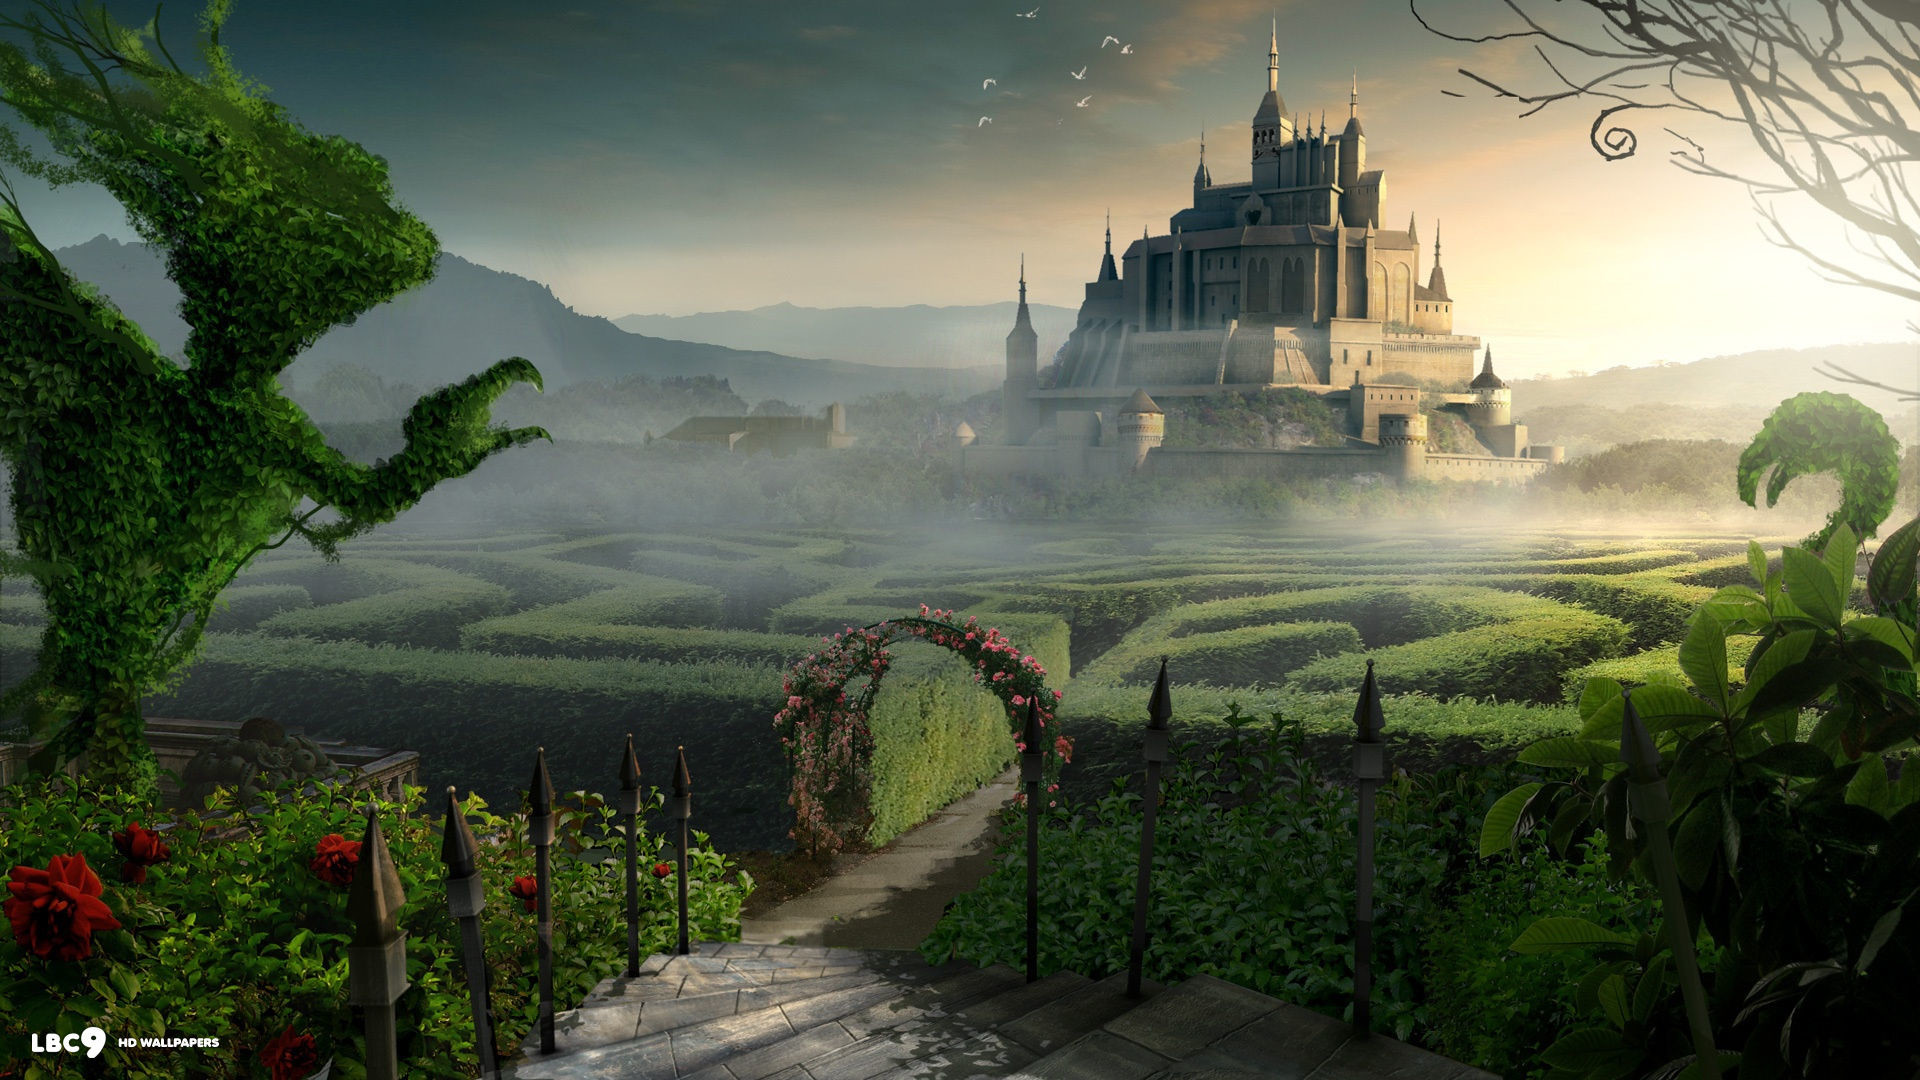 fantasy landscape wallpaper (76+ images)